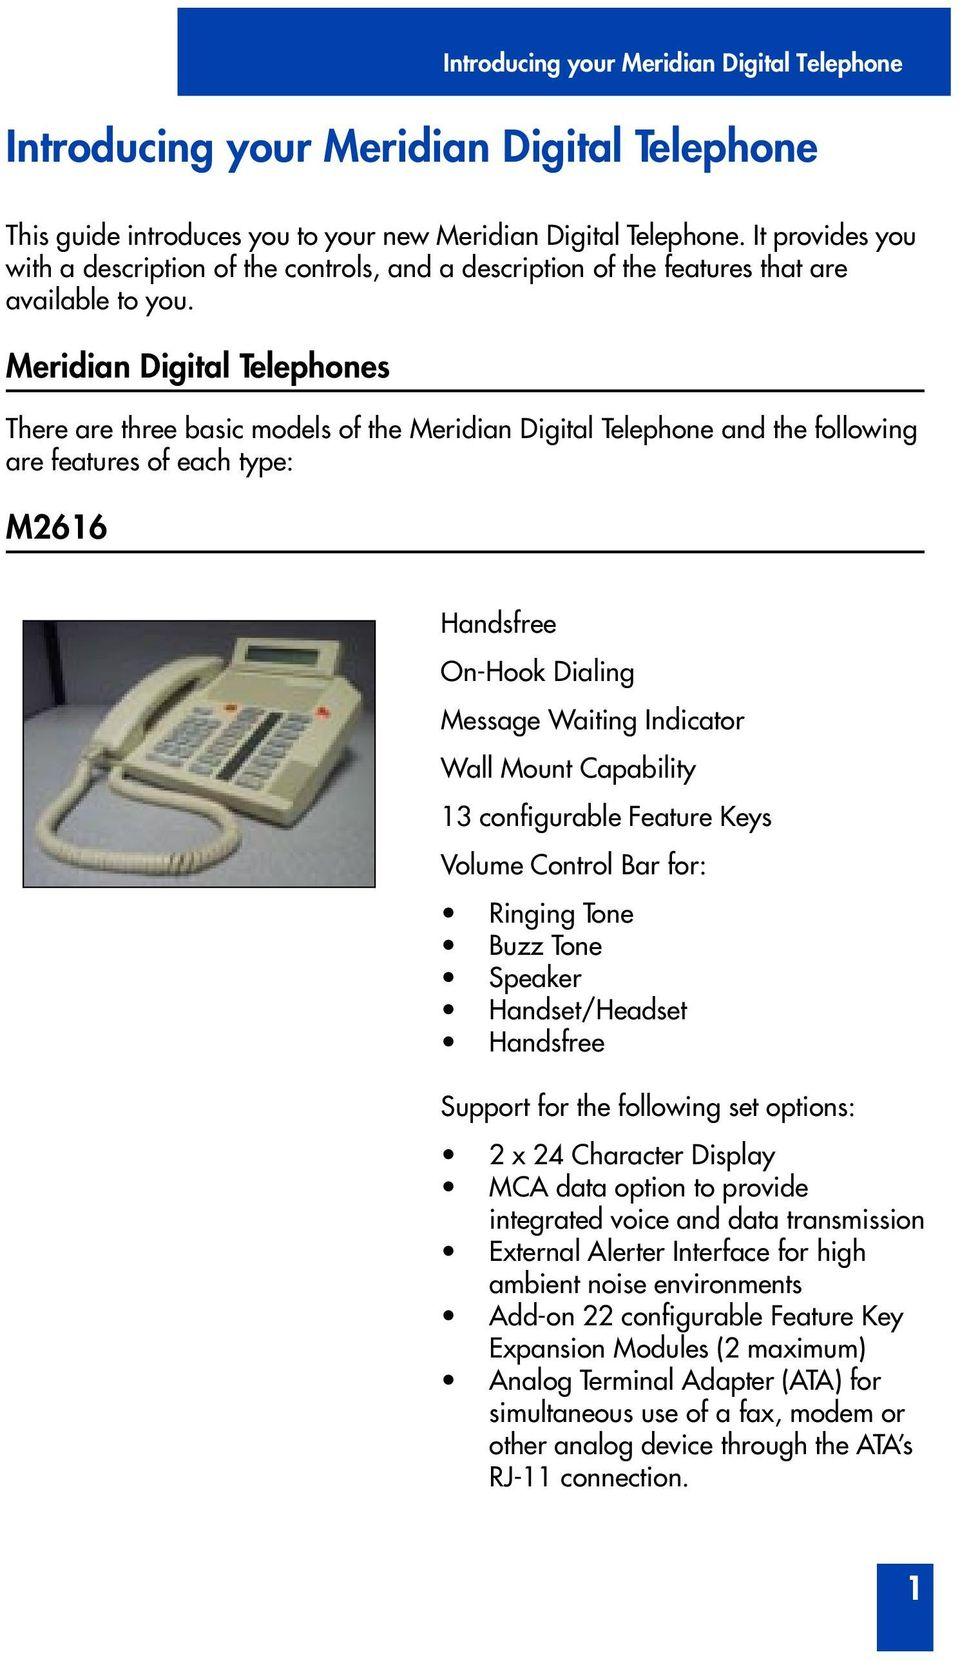 Meridian Digital Telephones There are three basic models of the Meridian Digital Telephone and the following are features of each type: M2616 Handsfree On-Hook Dialing Message Waiting Indicator Wall